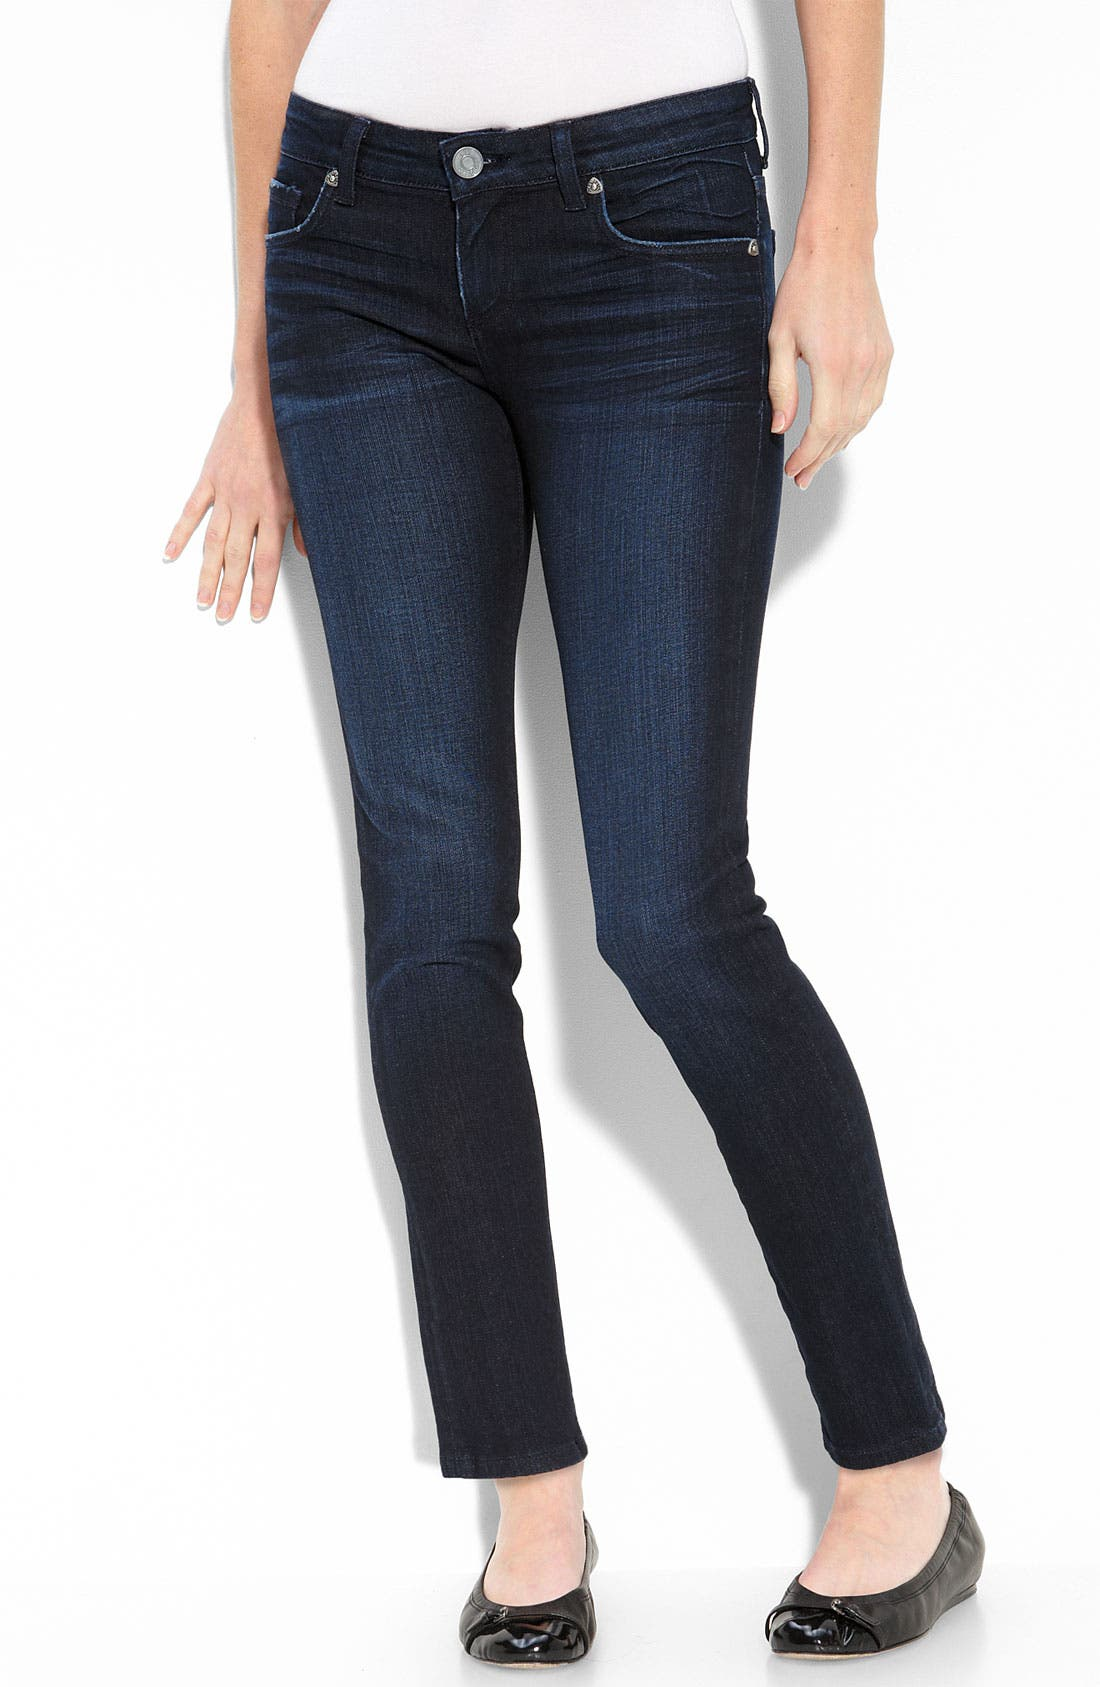 Main Image - KUT from the Kloth 'Audrey' Skinny Stretch Ankle Jeans (Petite)